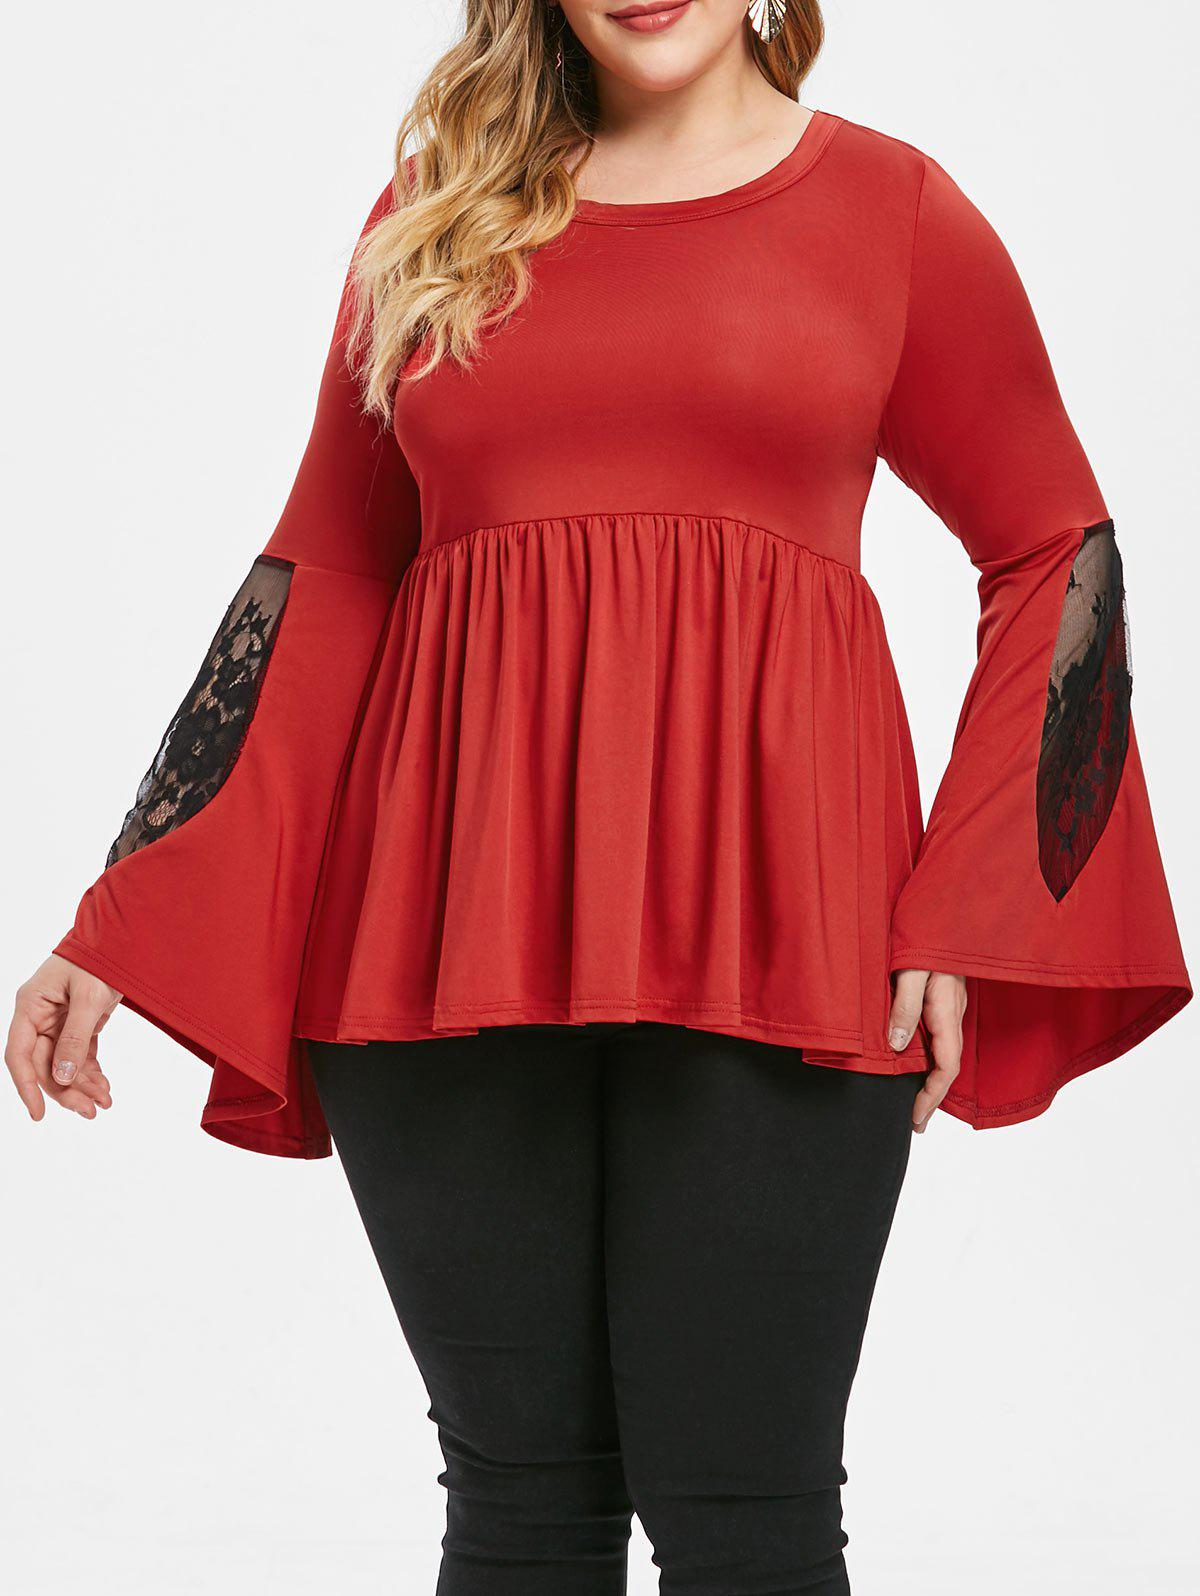 Chic Plus Size Lace Insert Two Tone Peplum Top